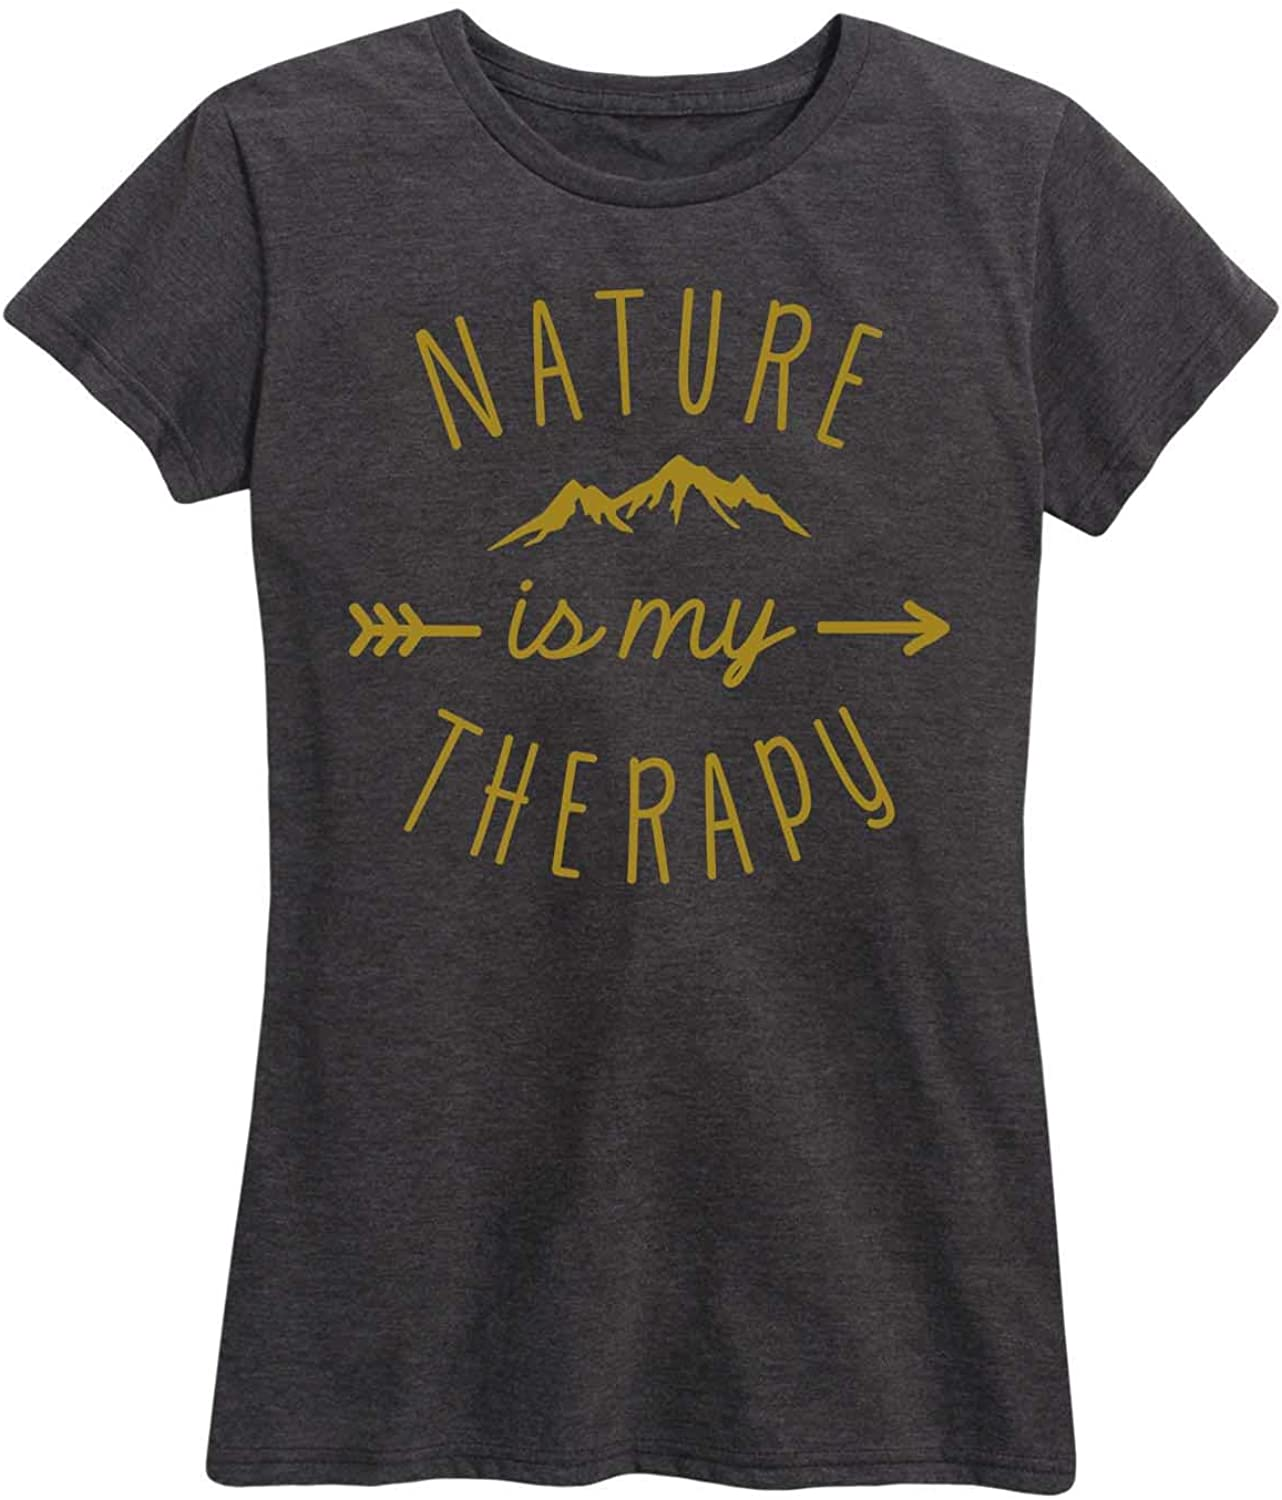 Nature is My Therapy - Women's Short Sleeve Graphic T-Shirt